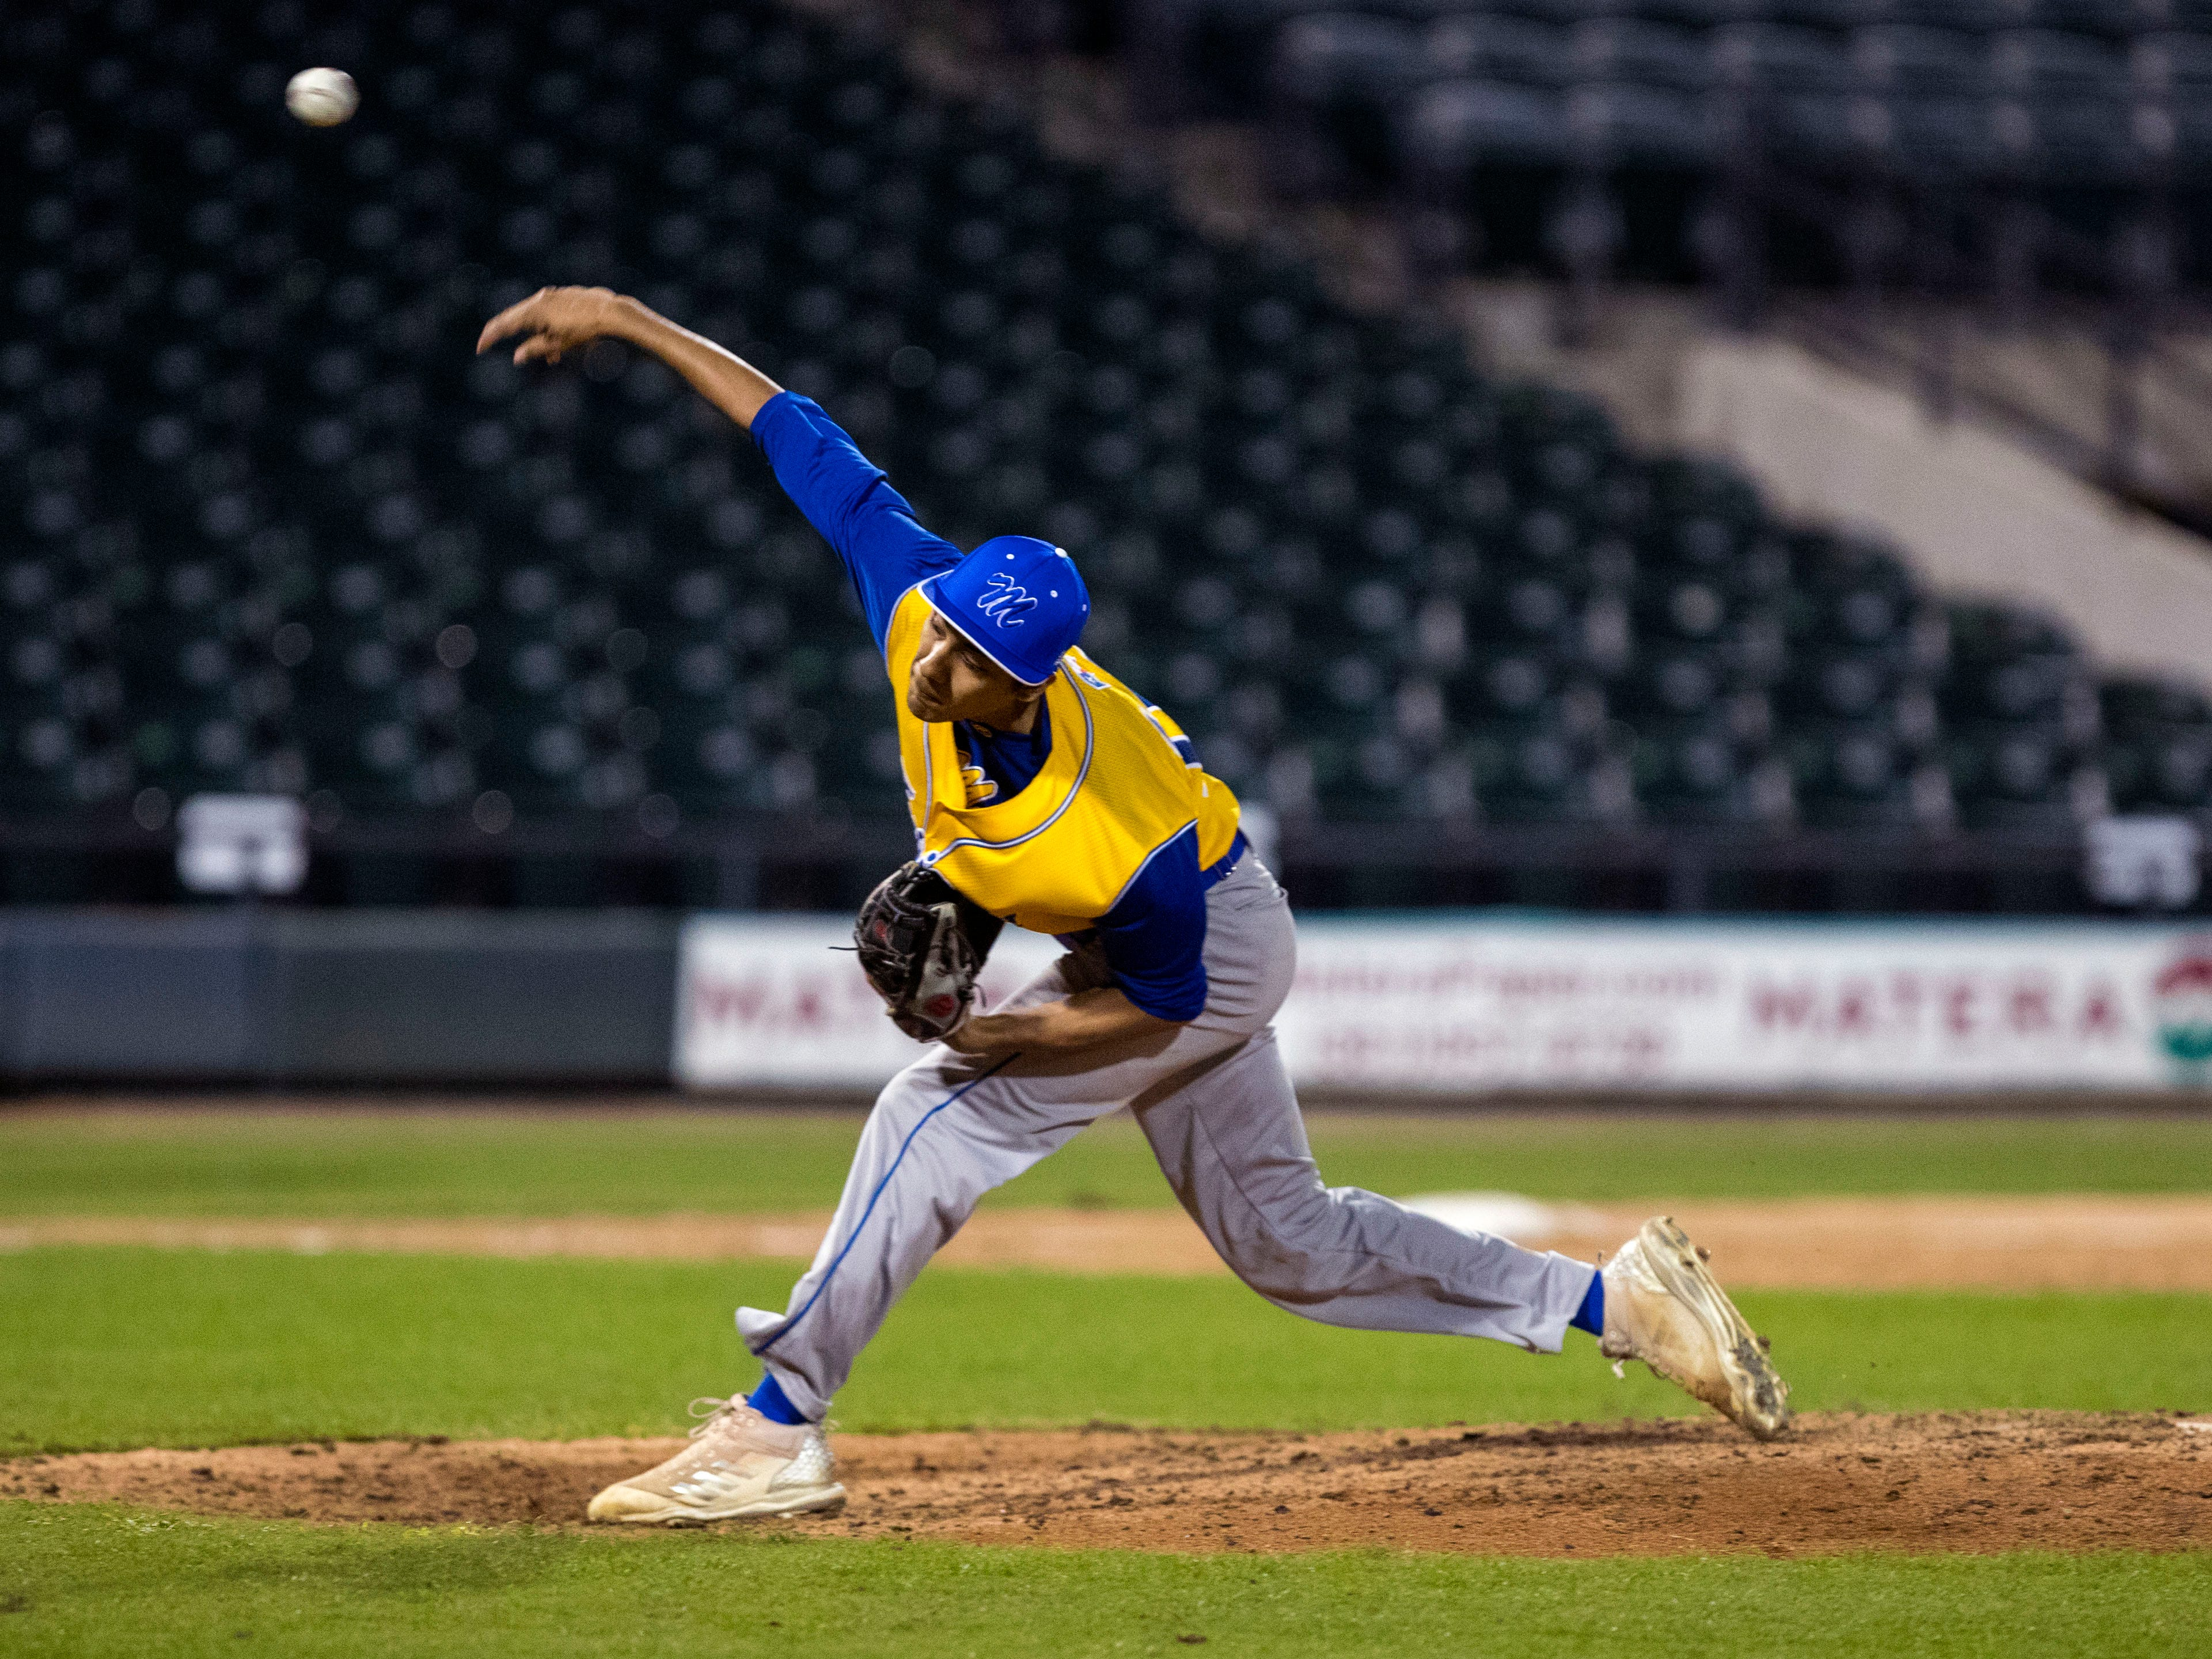 The Moody Trojans took on the Ray Texans in the season opener at Whataburger Field on Monday, February 18, 2019. Moody took an early lead to beat Ray 7-3.